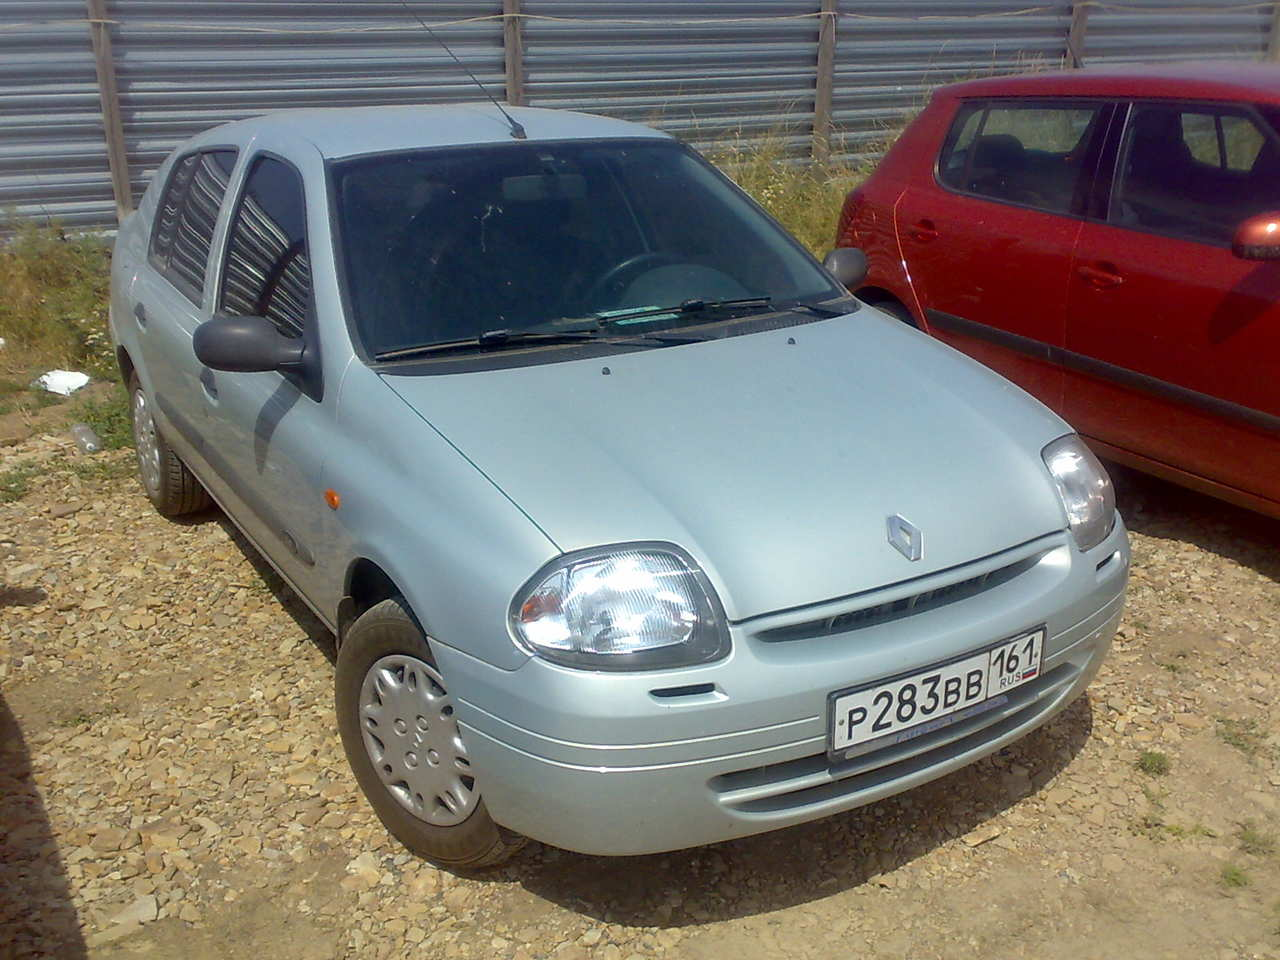 2000 renault clio for sale  1 4  gasoline  ff  manual for sale renault clio 1.6 16v 2000 manual renault clio 1.2 2000 manual